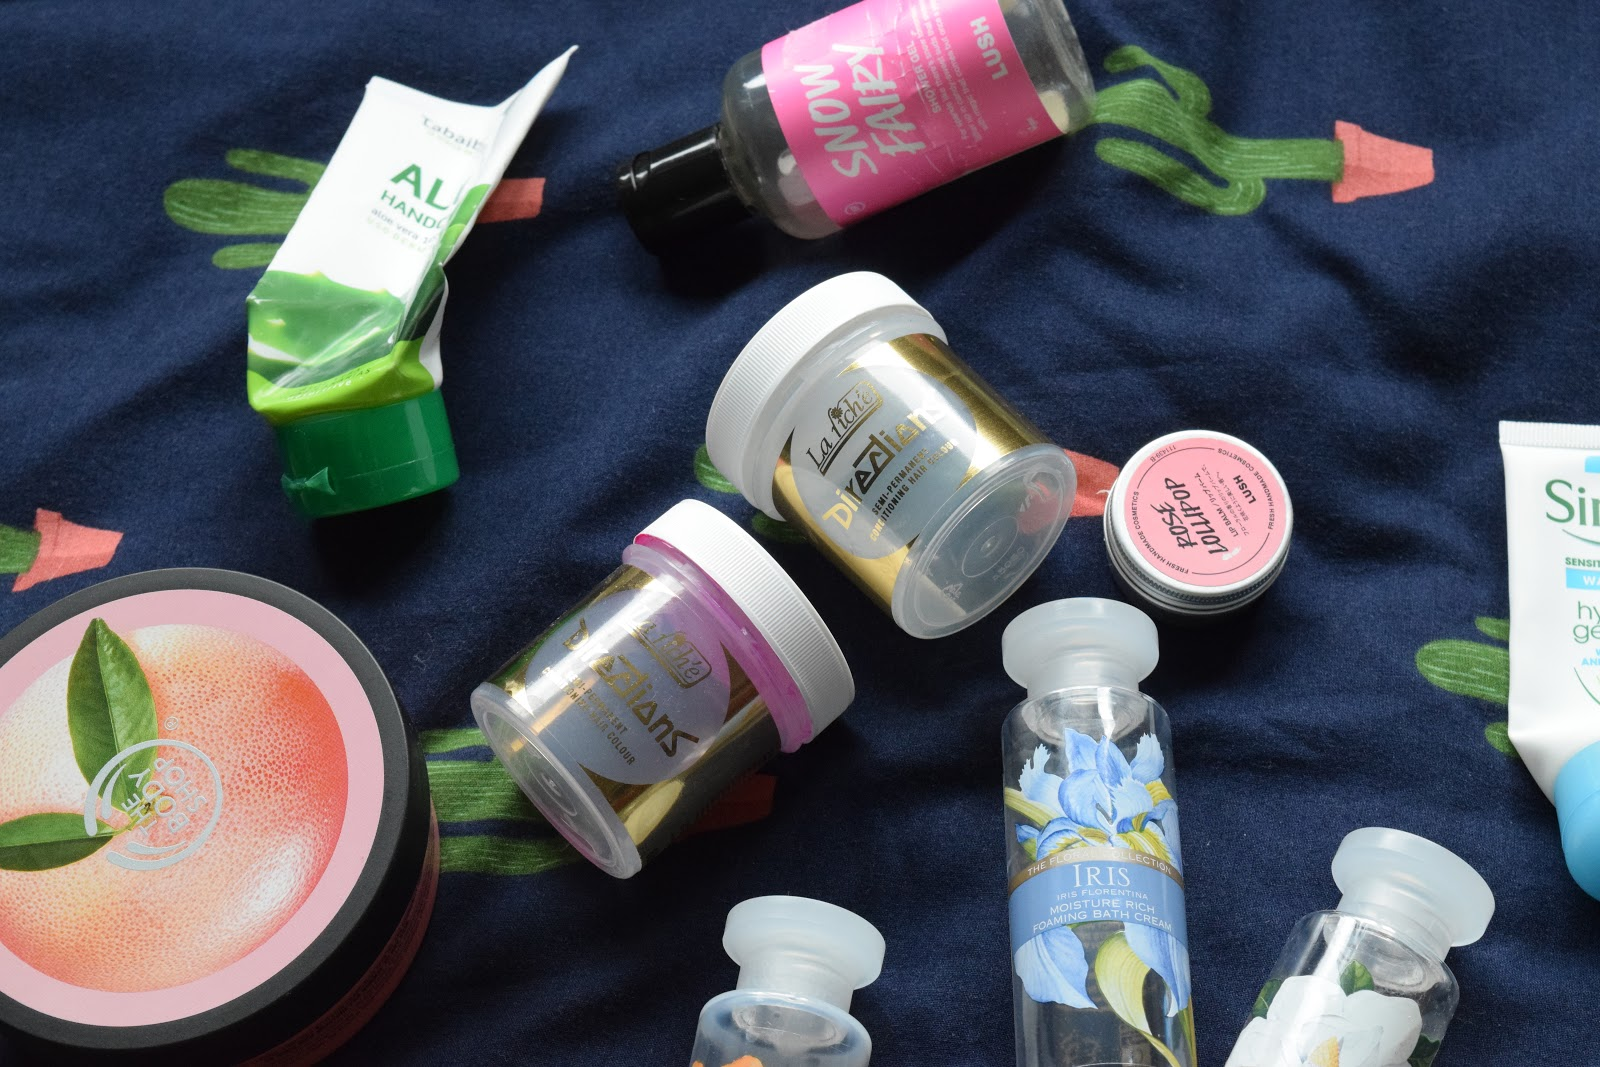 flatlay of empty beauty products including lariche directions, Lush and The Body Shop